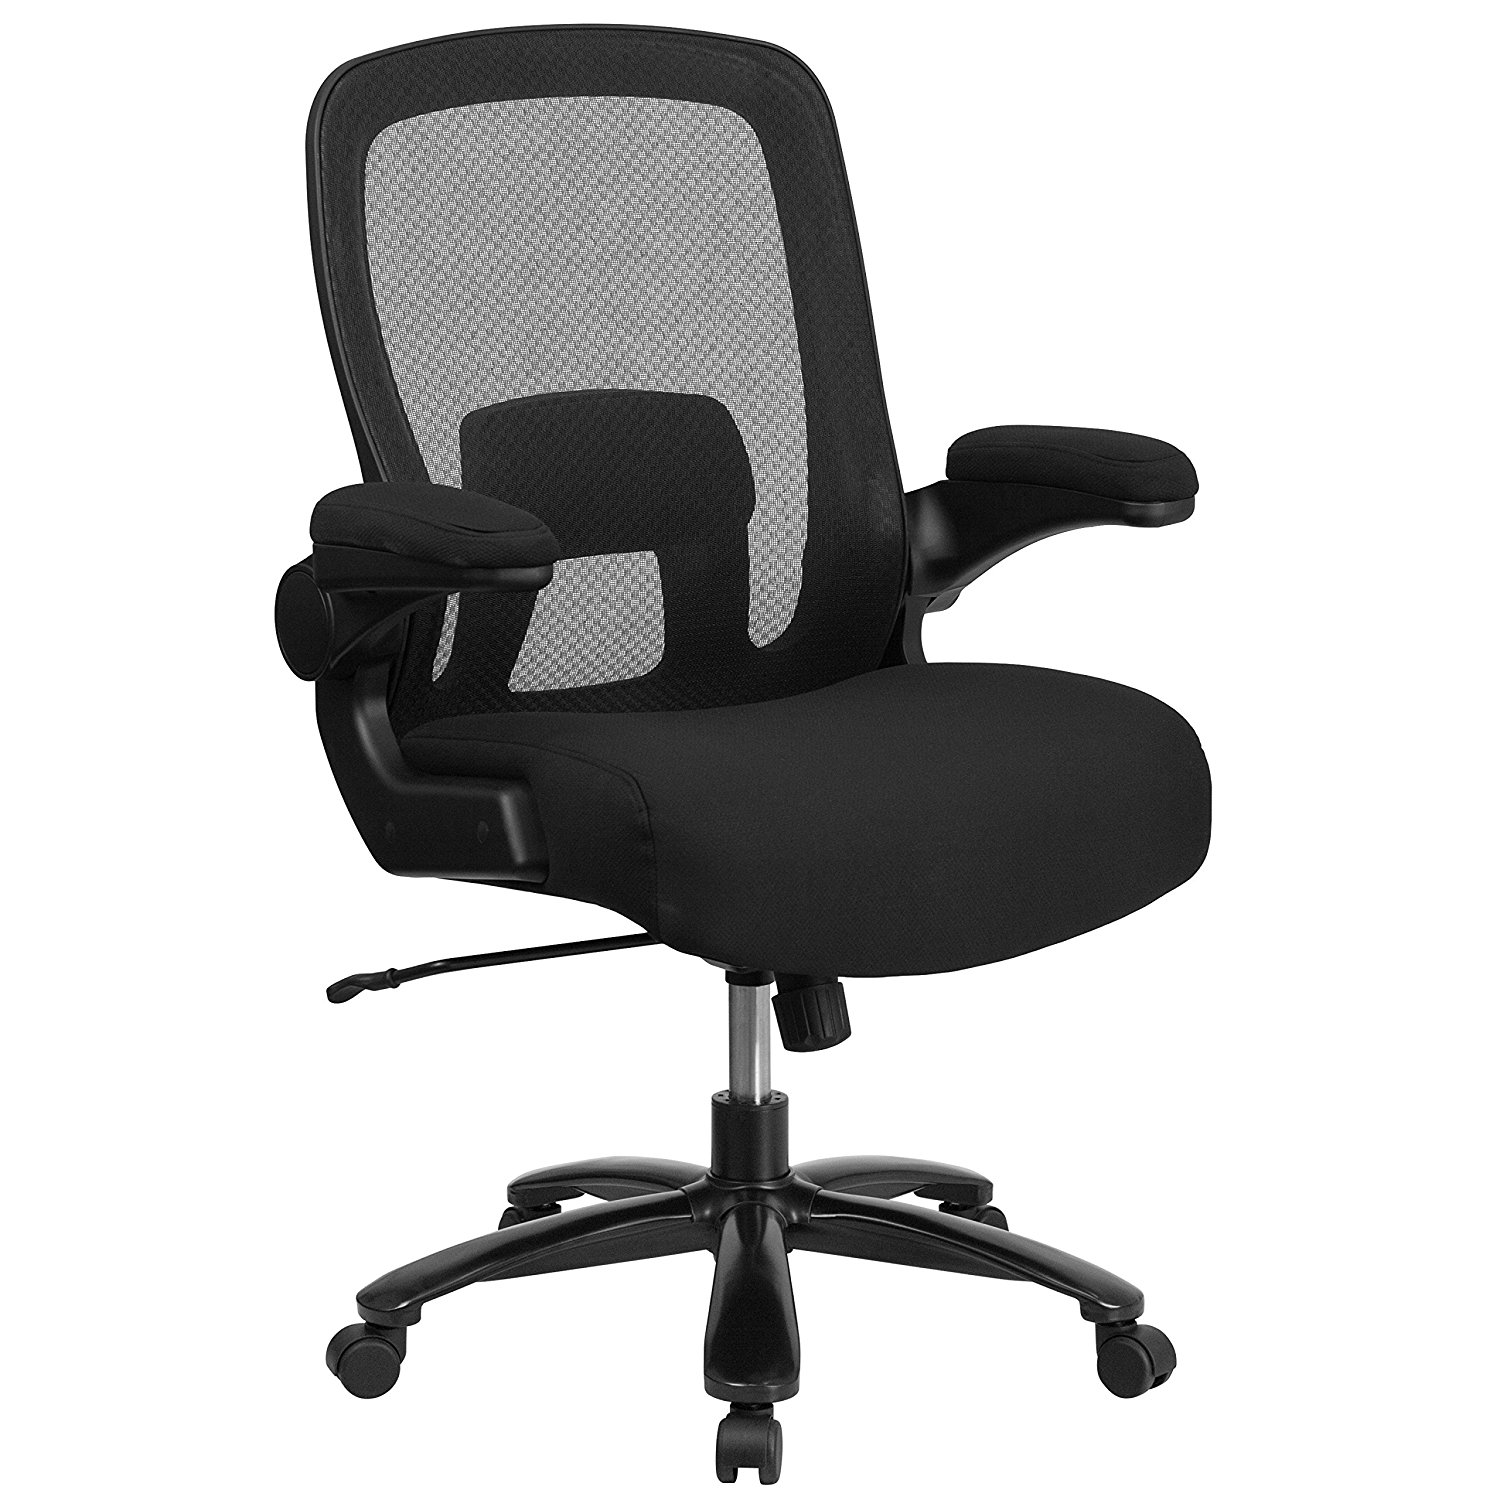 Tall Office Chair 10 Big And Tall Office Chairs For Extra Large Comfort